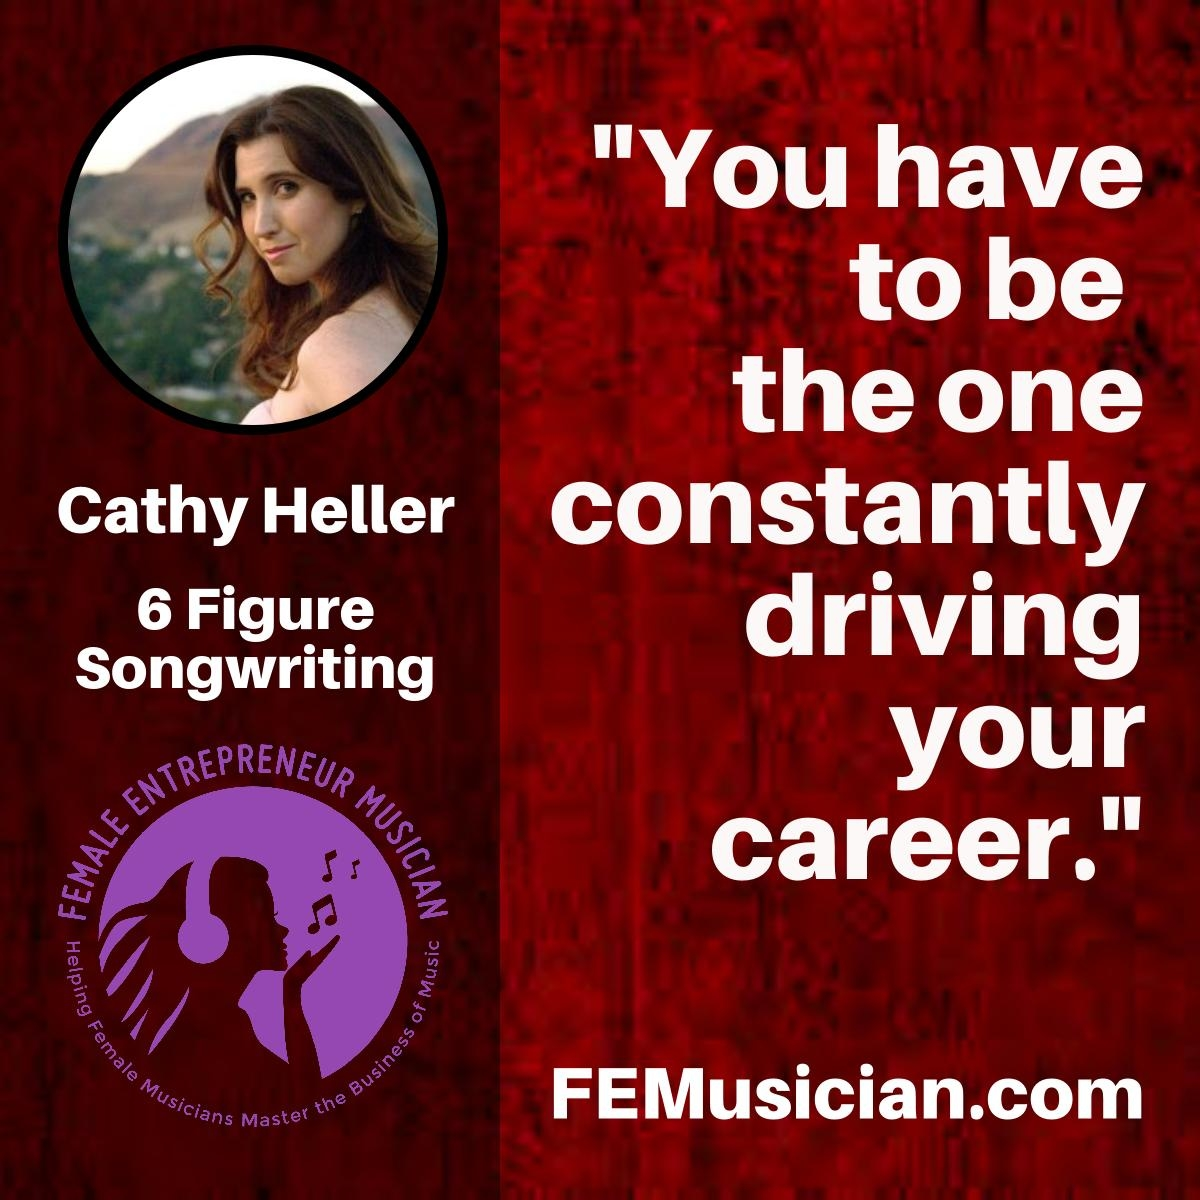 Watch How to Build Your Own Music Career video